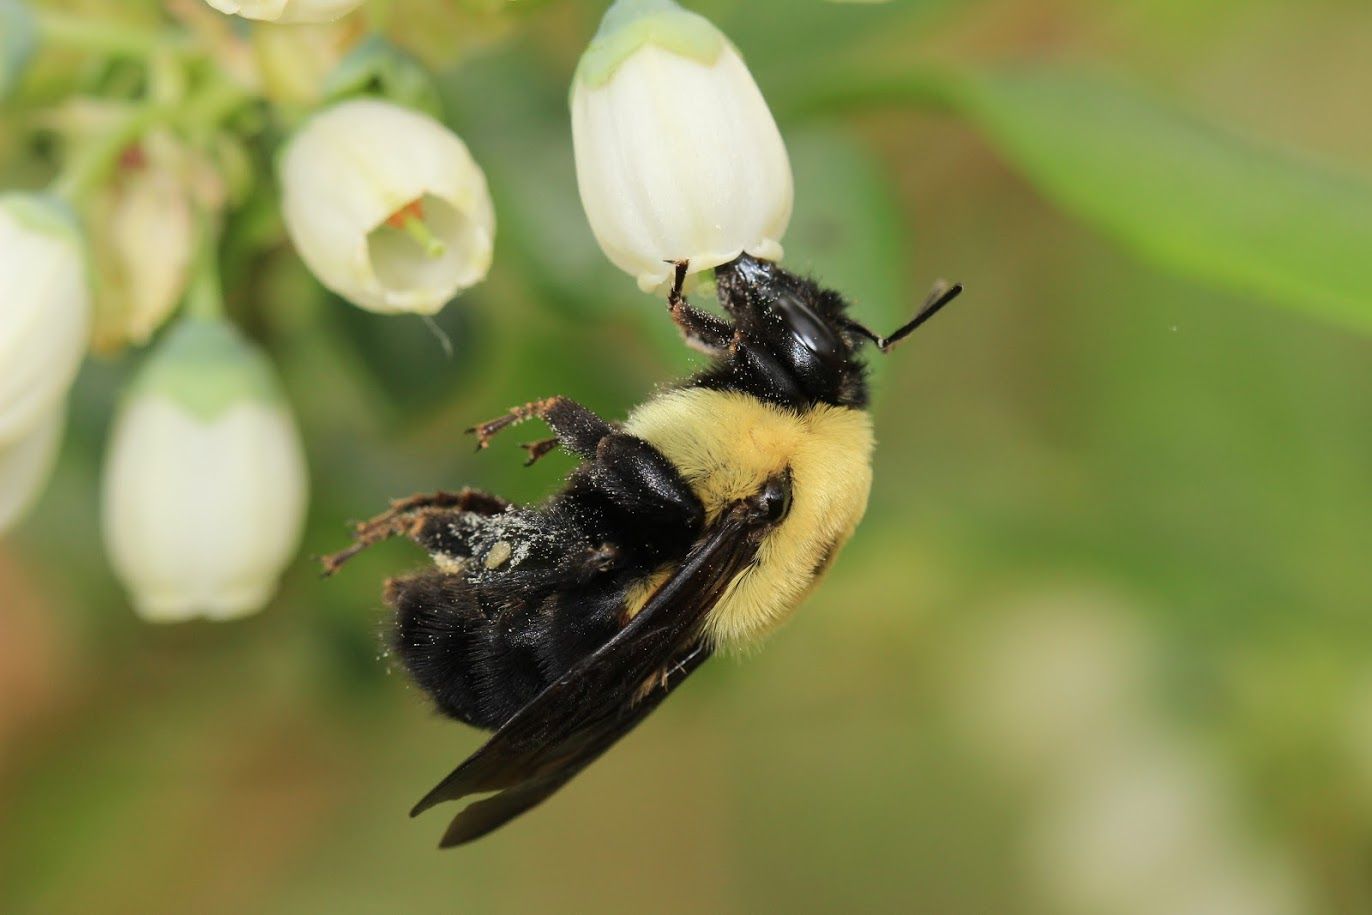 Researchers at Rutgers University are reporting that more species of wild bees are needed for vast regions of crops to thrive.